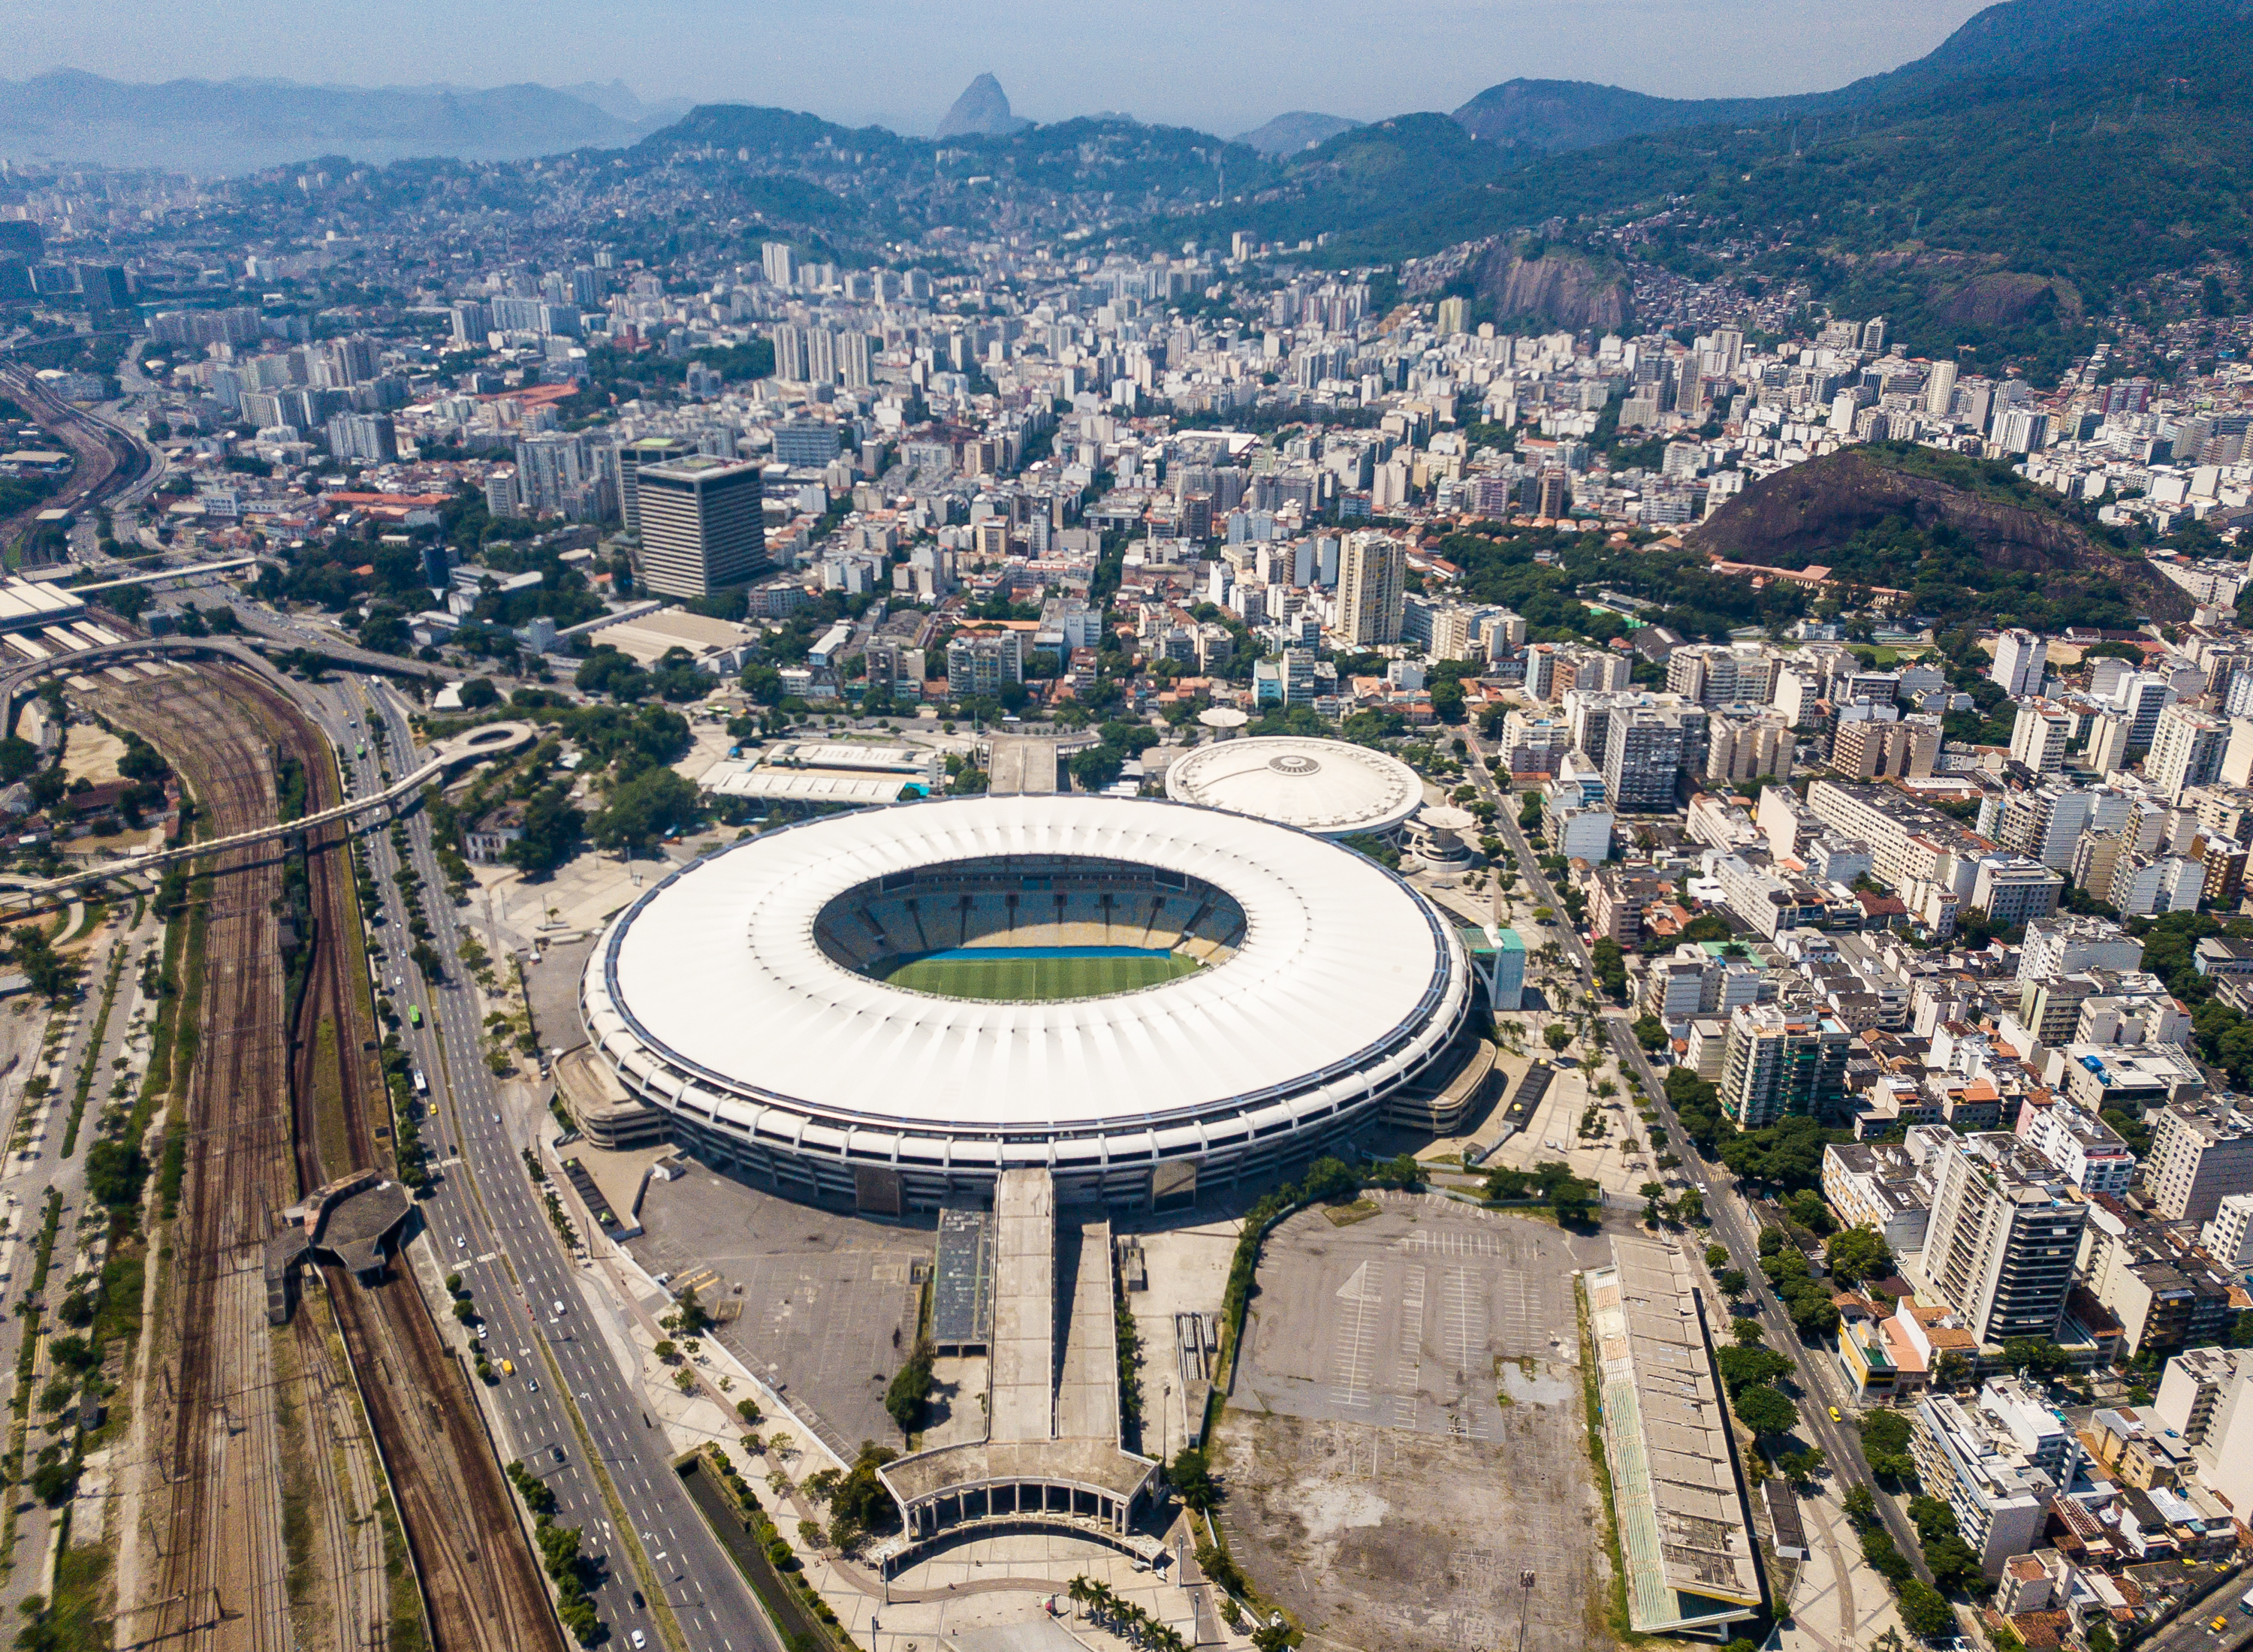 Maracana among Brazilian football stadiums converted into hospitals to treat coronavirus patients